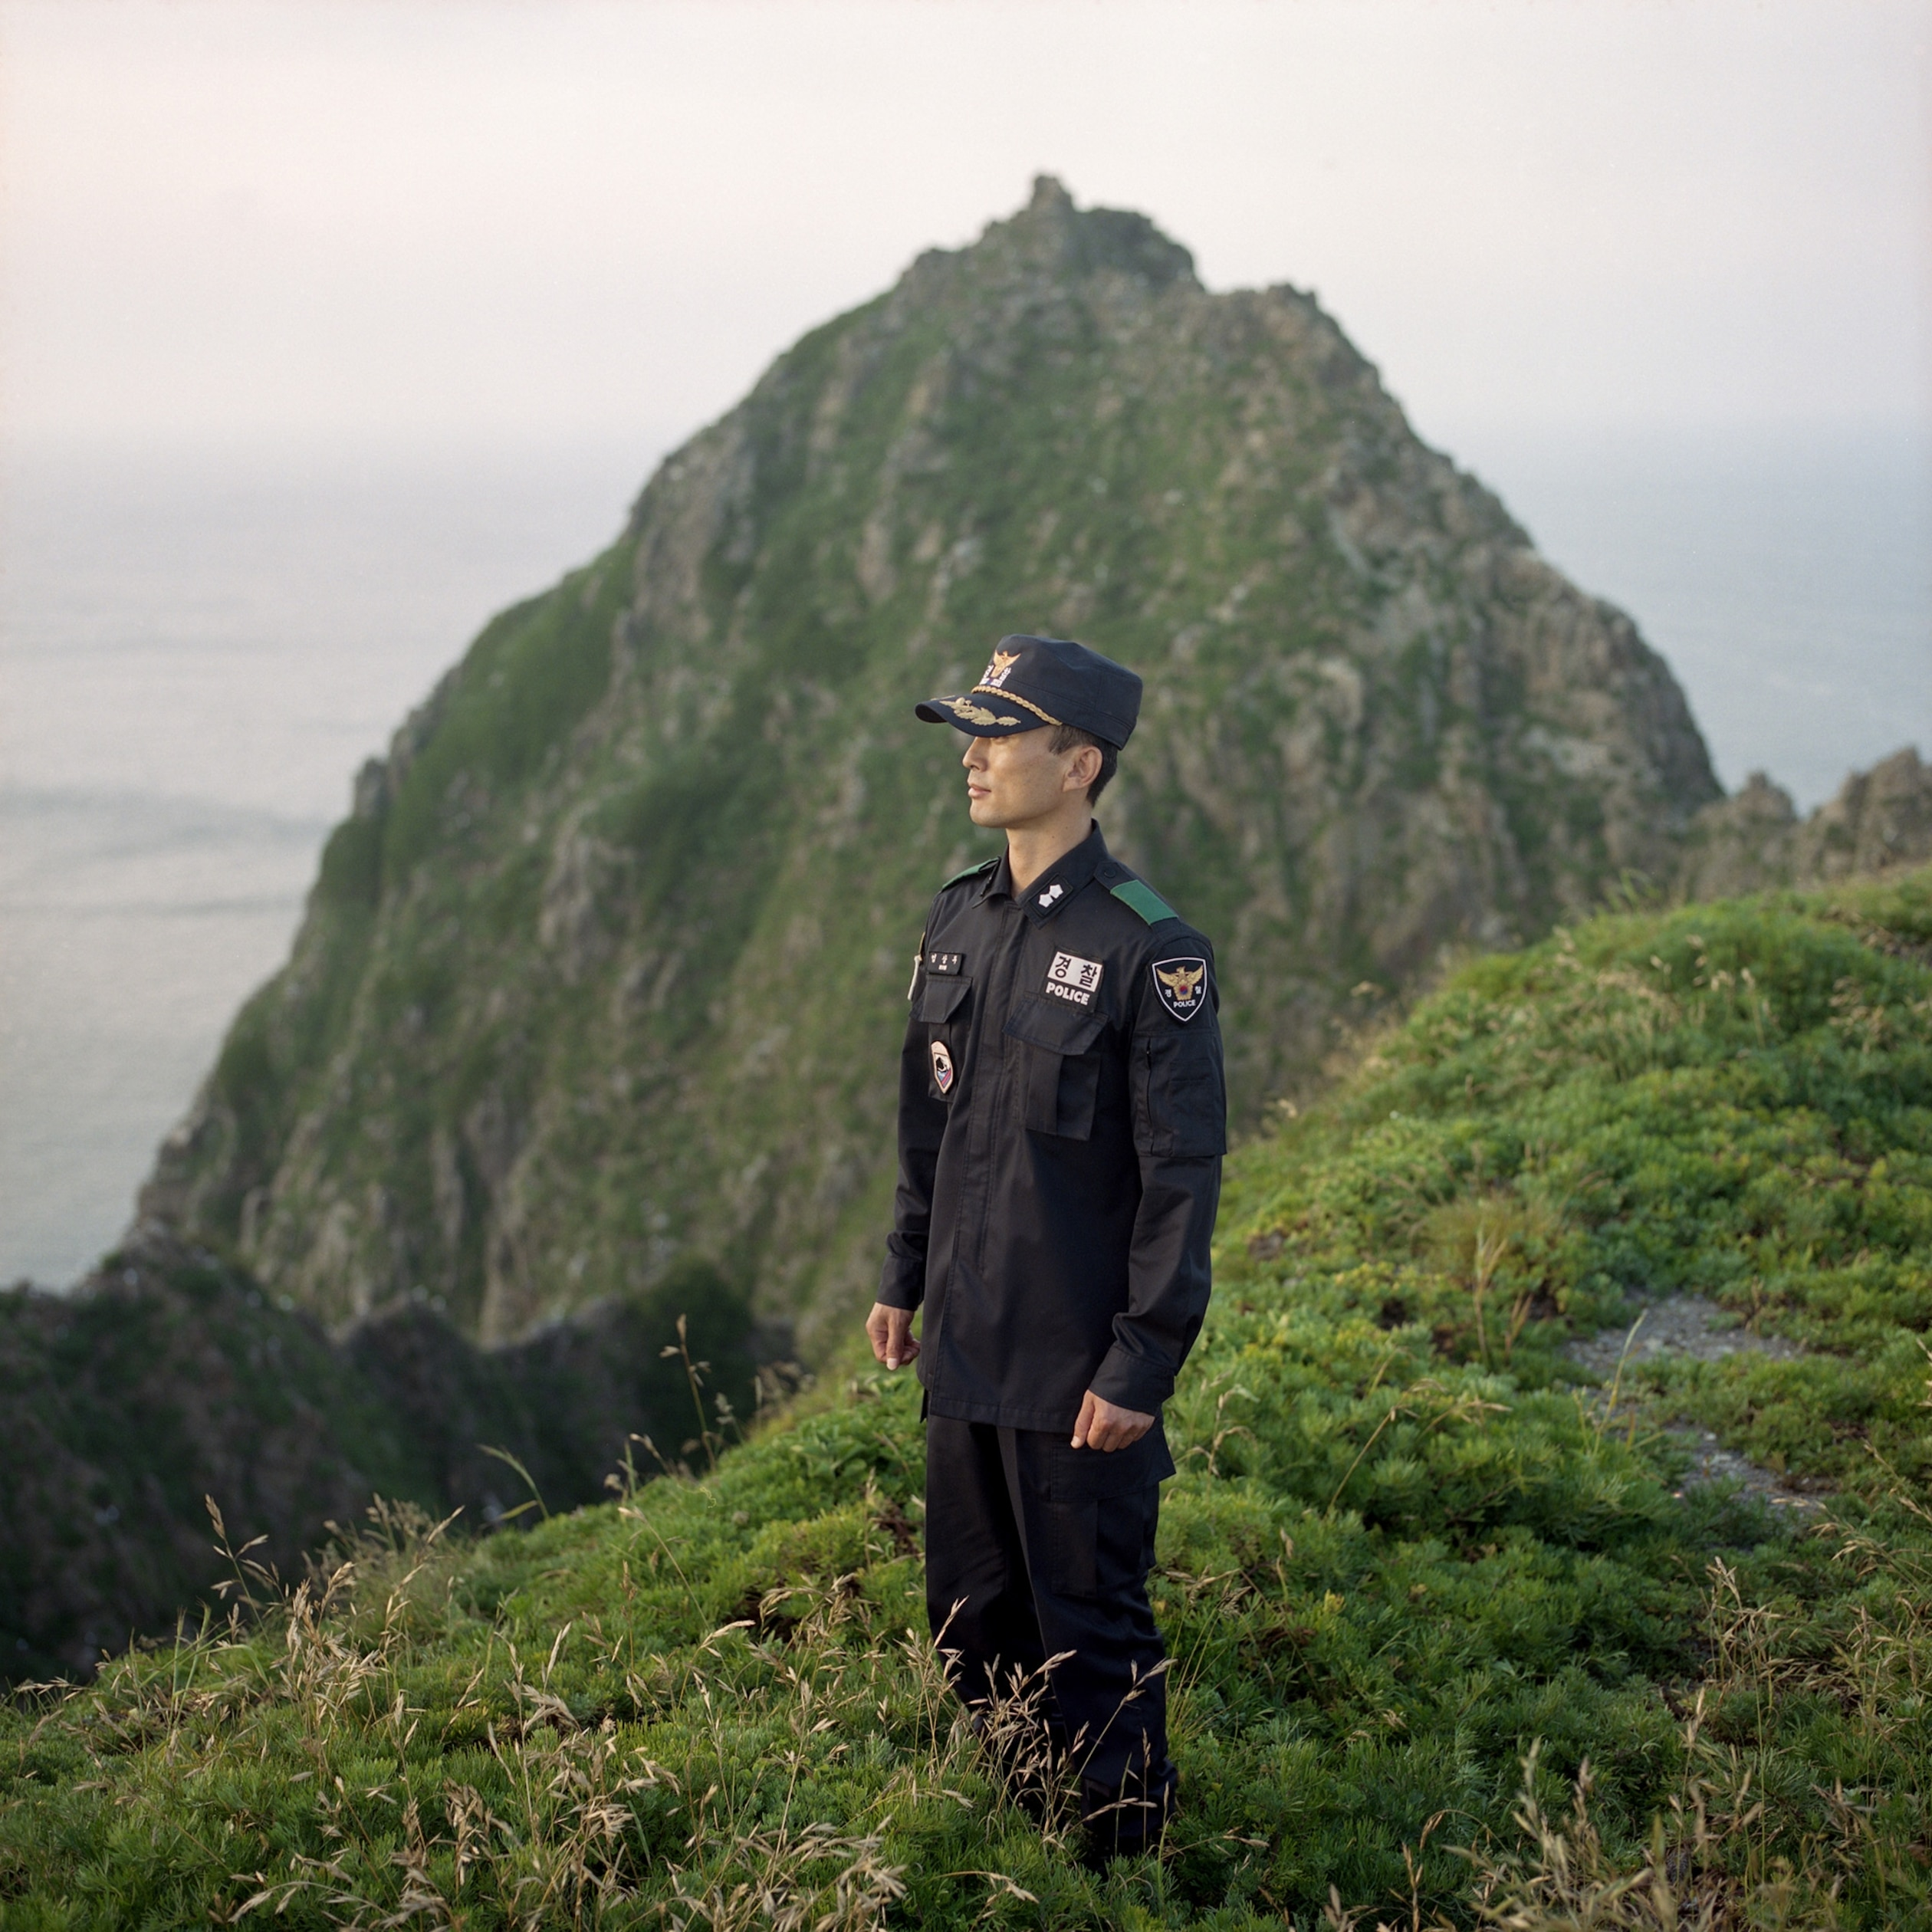 the Dokdo Islands in the East Sea